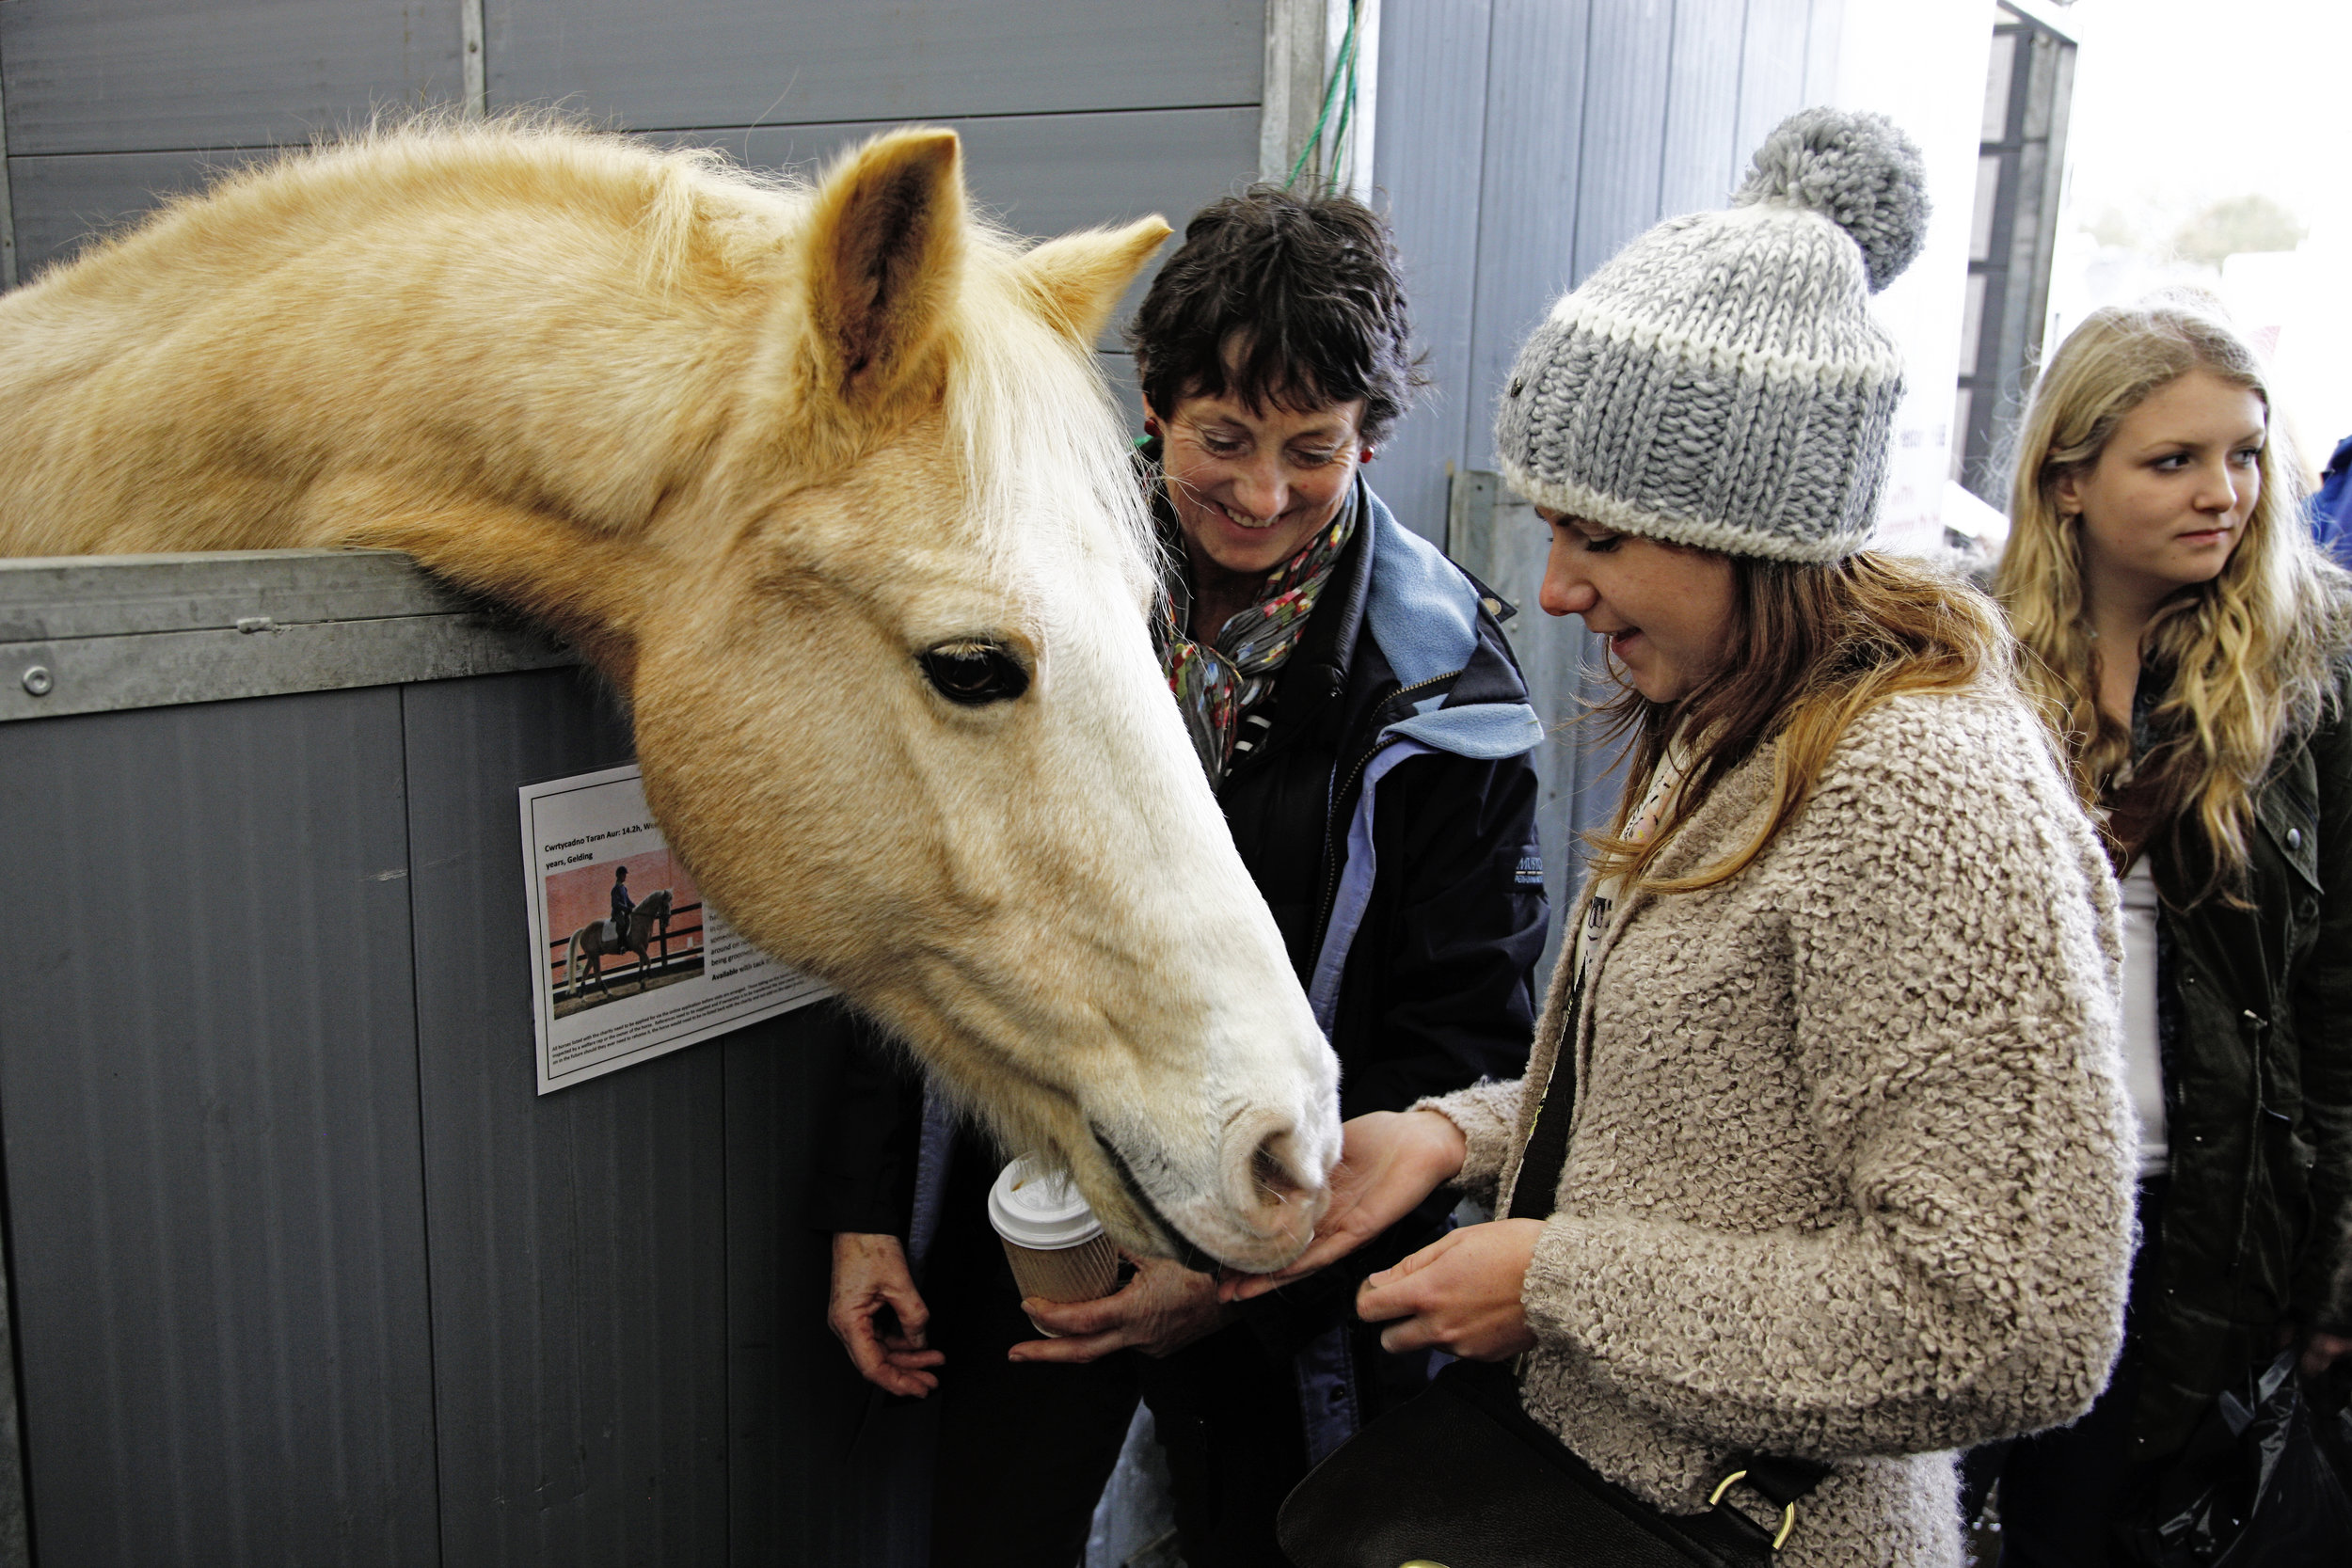 Take a wander through our Rescue Village to see the horses in need of forever homes